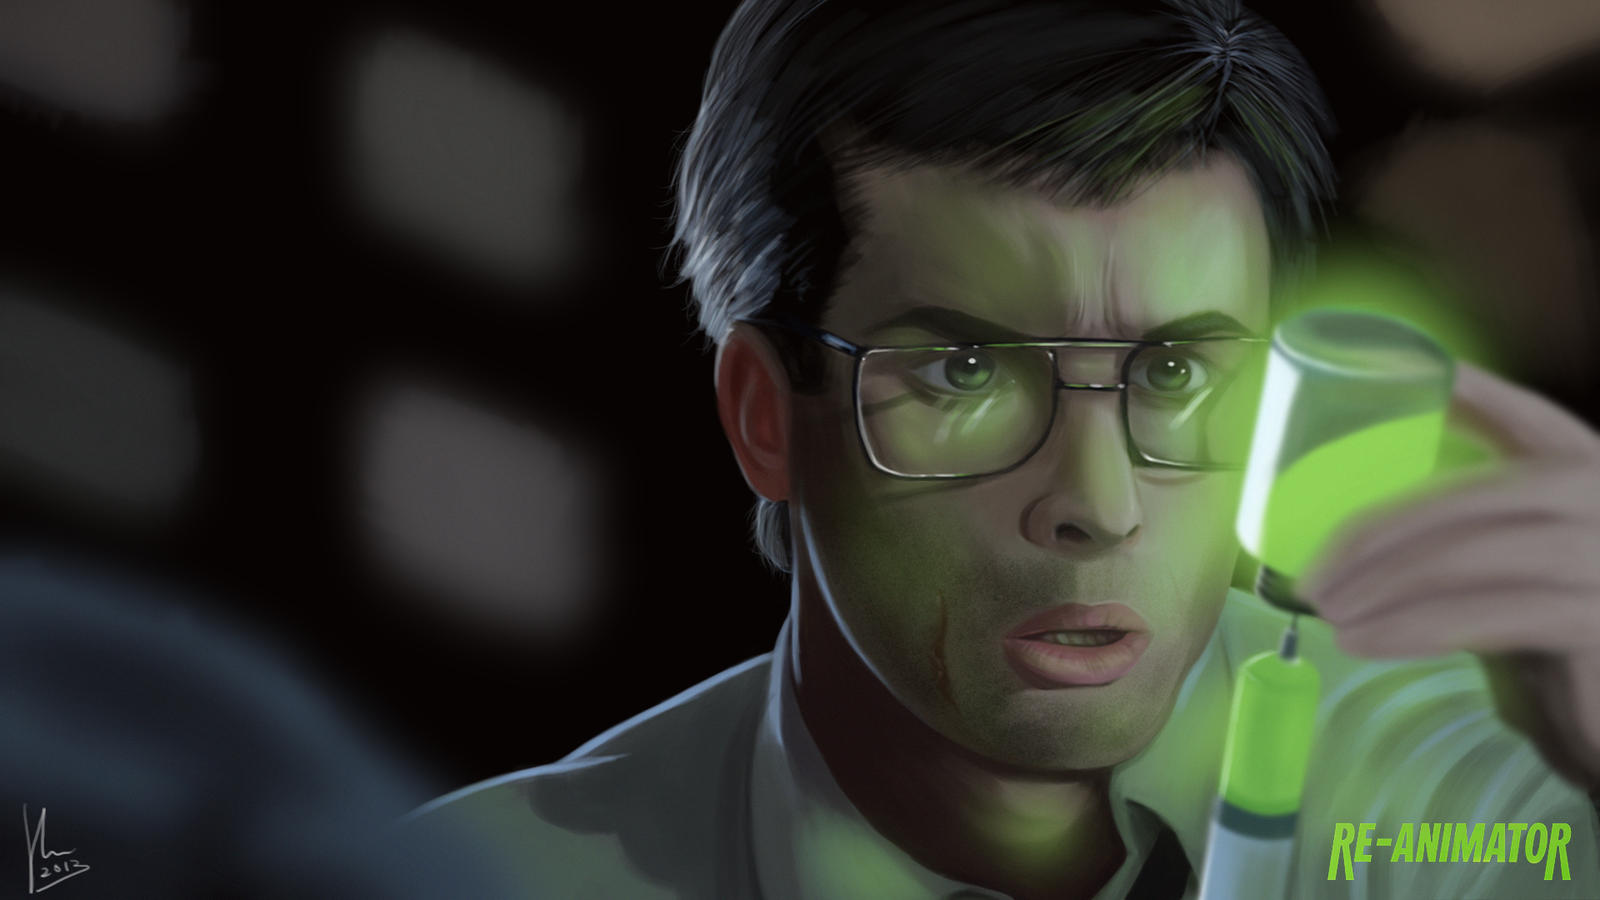 Re-Animator by asylum-studios